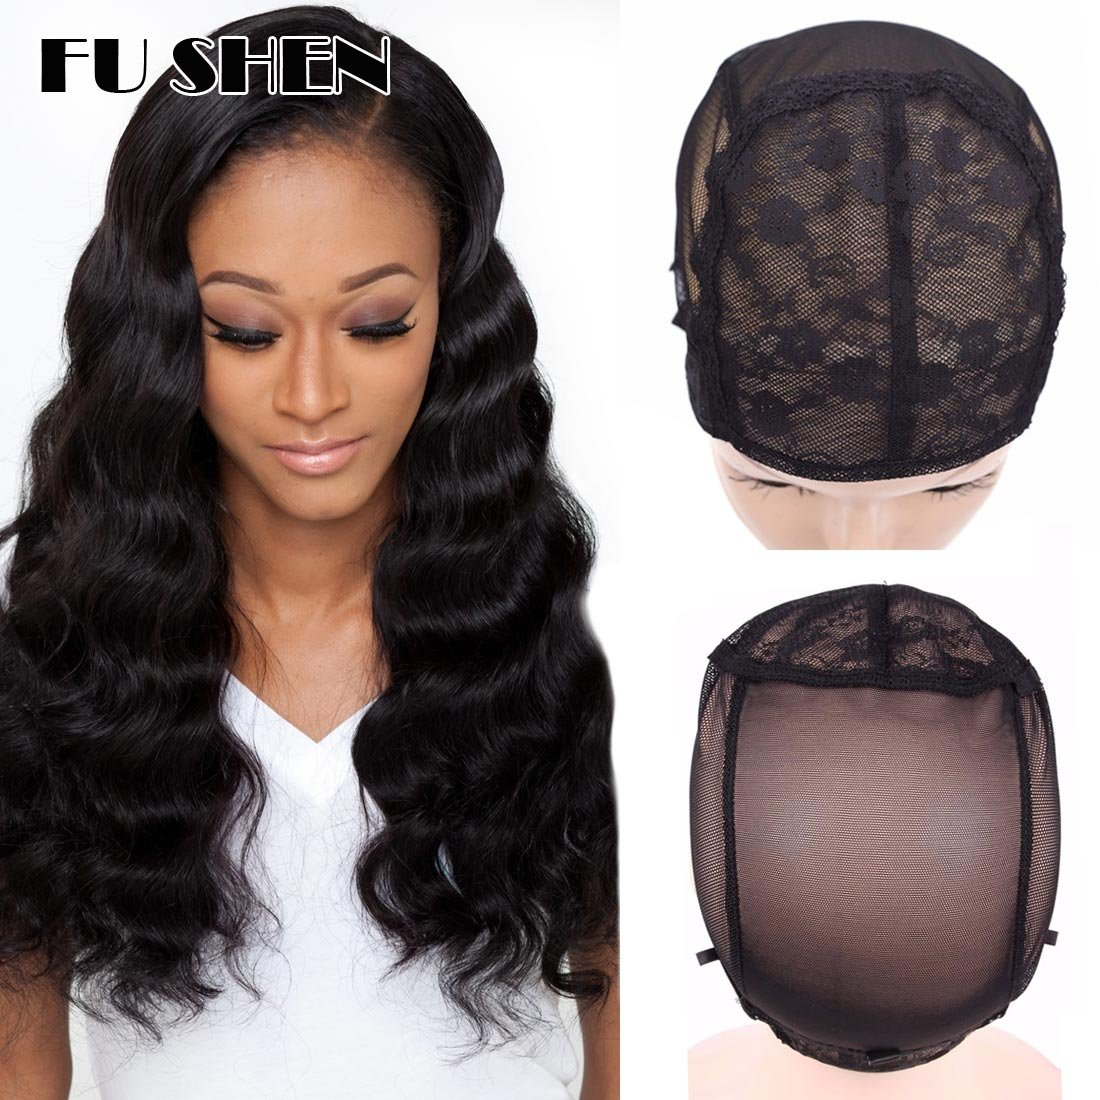 Humorous 1 Pcs Double Lace Wig Caps For Making Wigs And Hair Weaving Stretch Adjustable Wig Cap Hot Black Dome Cap For Wig Hair Net With The Best Service Hair Extensions & Wigs